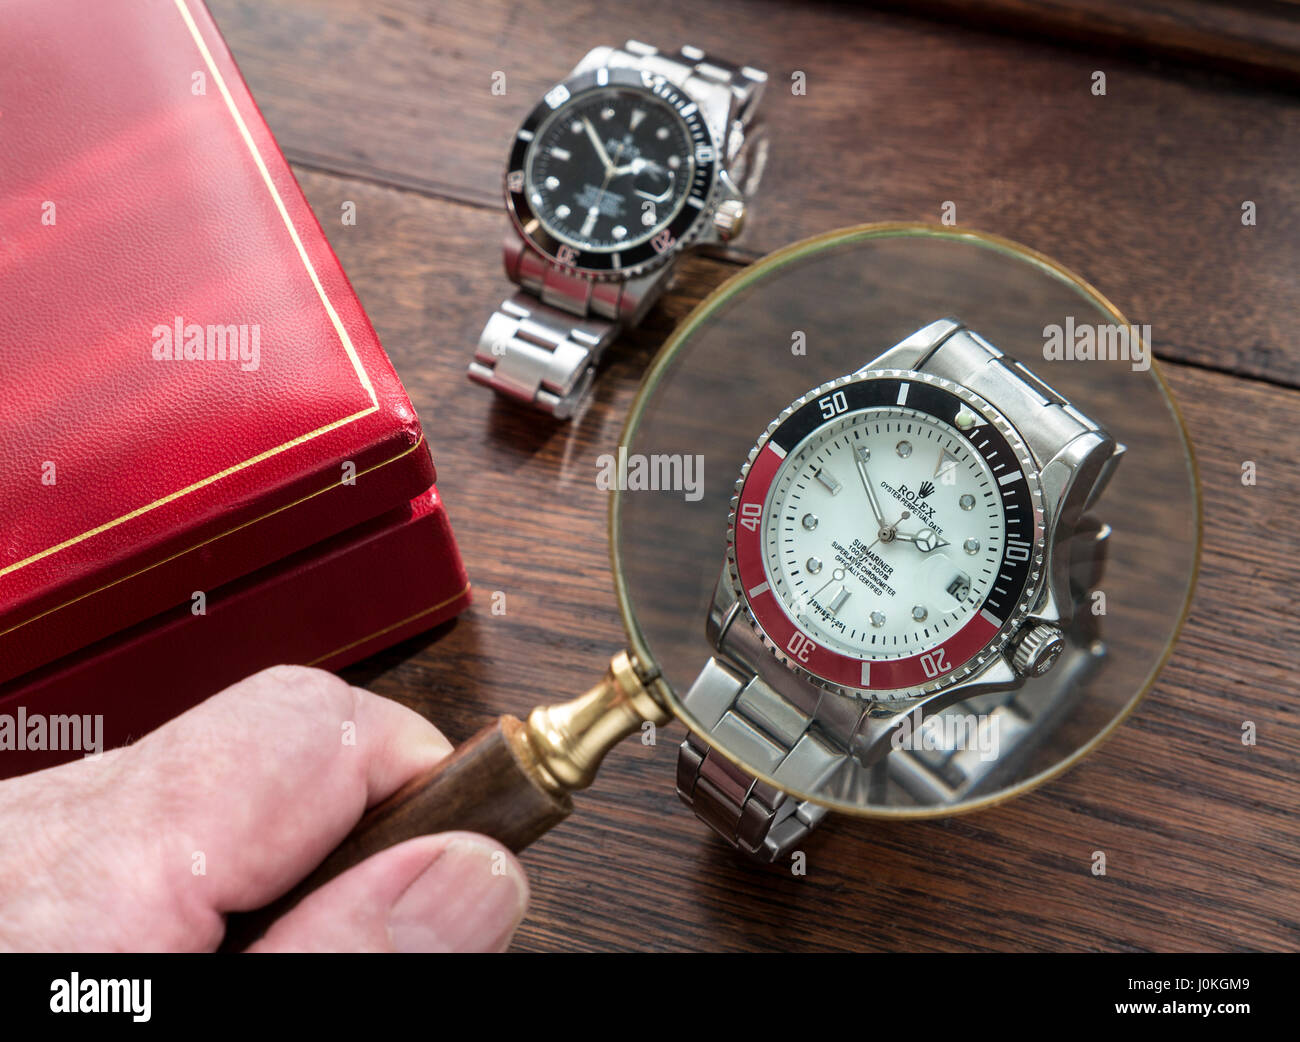 ROLEX WATCHES Magnifying glass and fake replica copy counterfeit men's Rolex watches on old wooden desk top - Stock Image